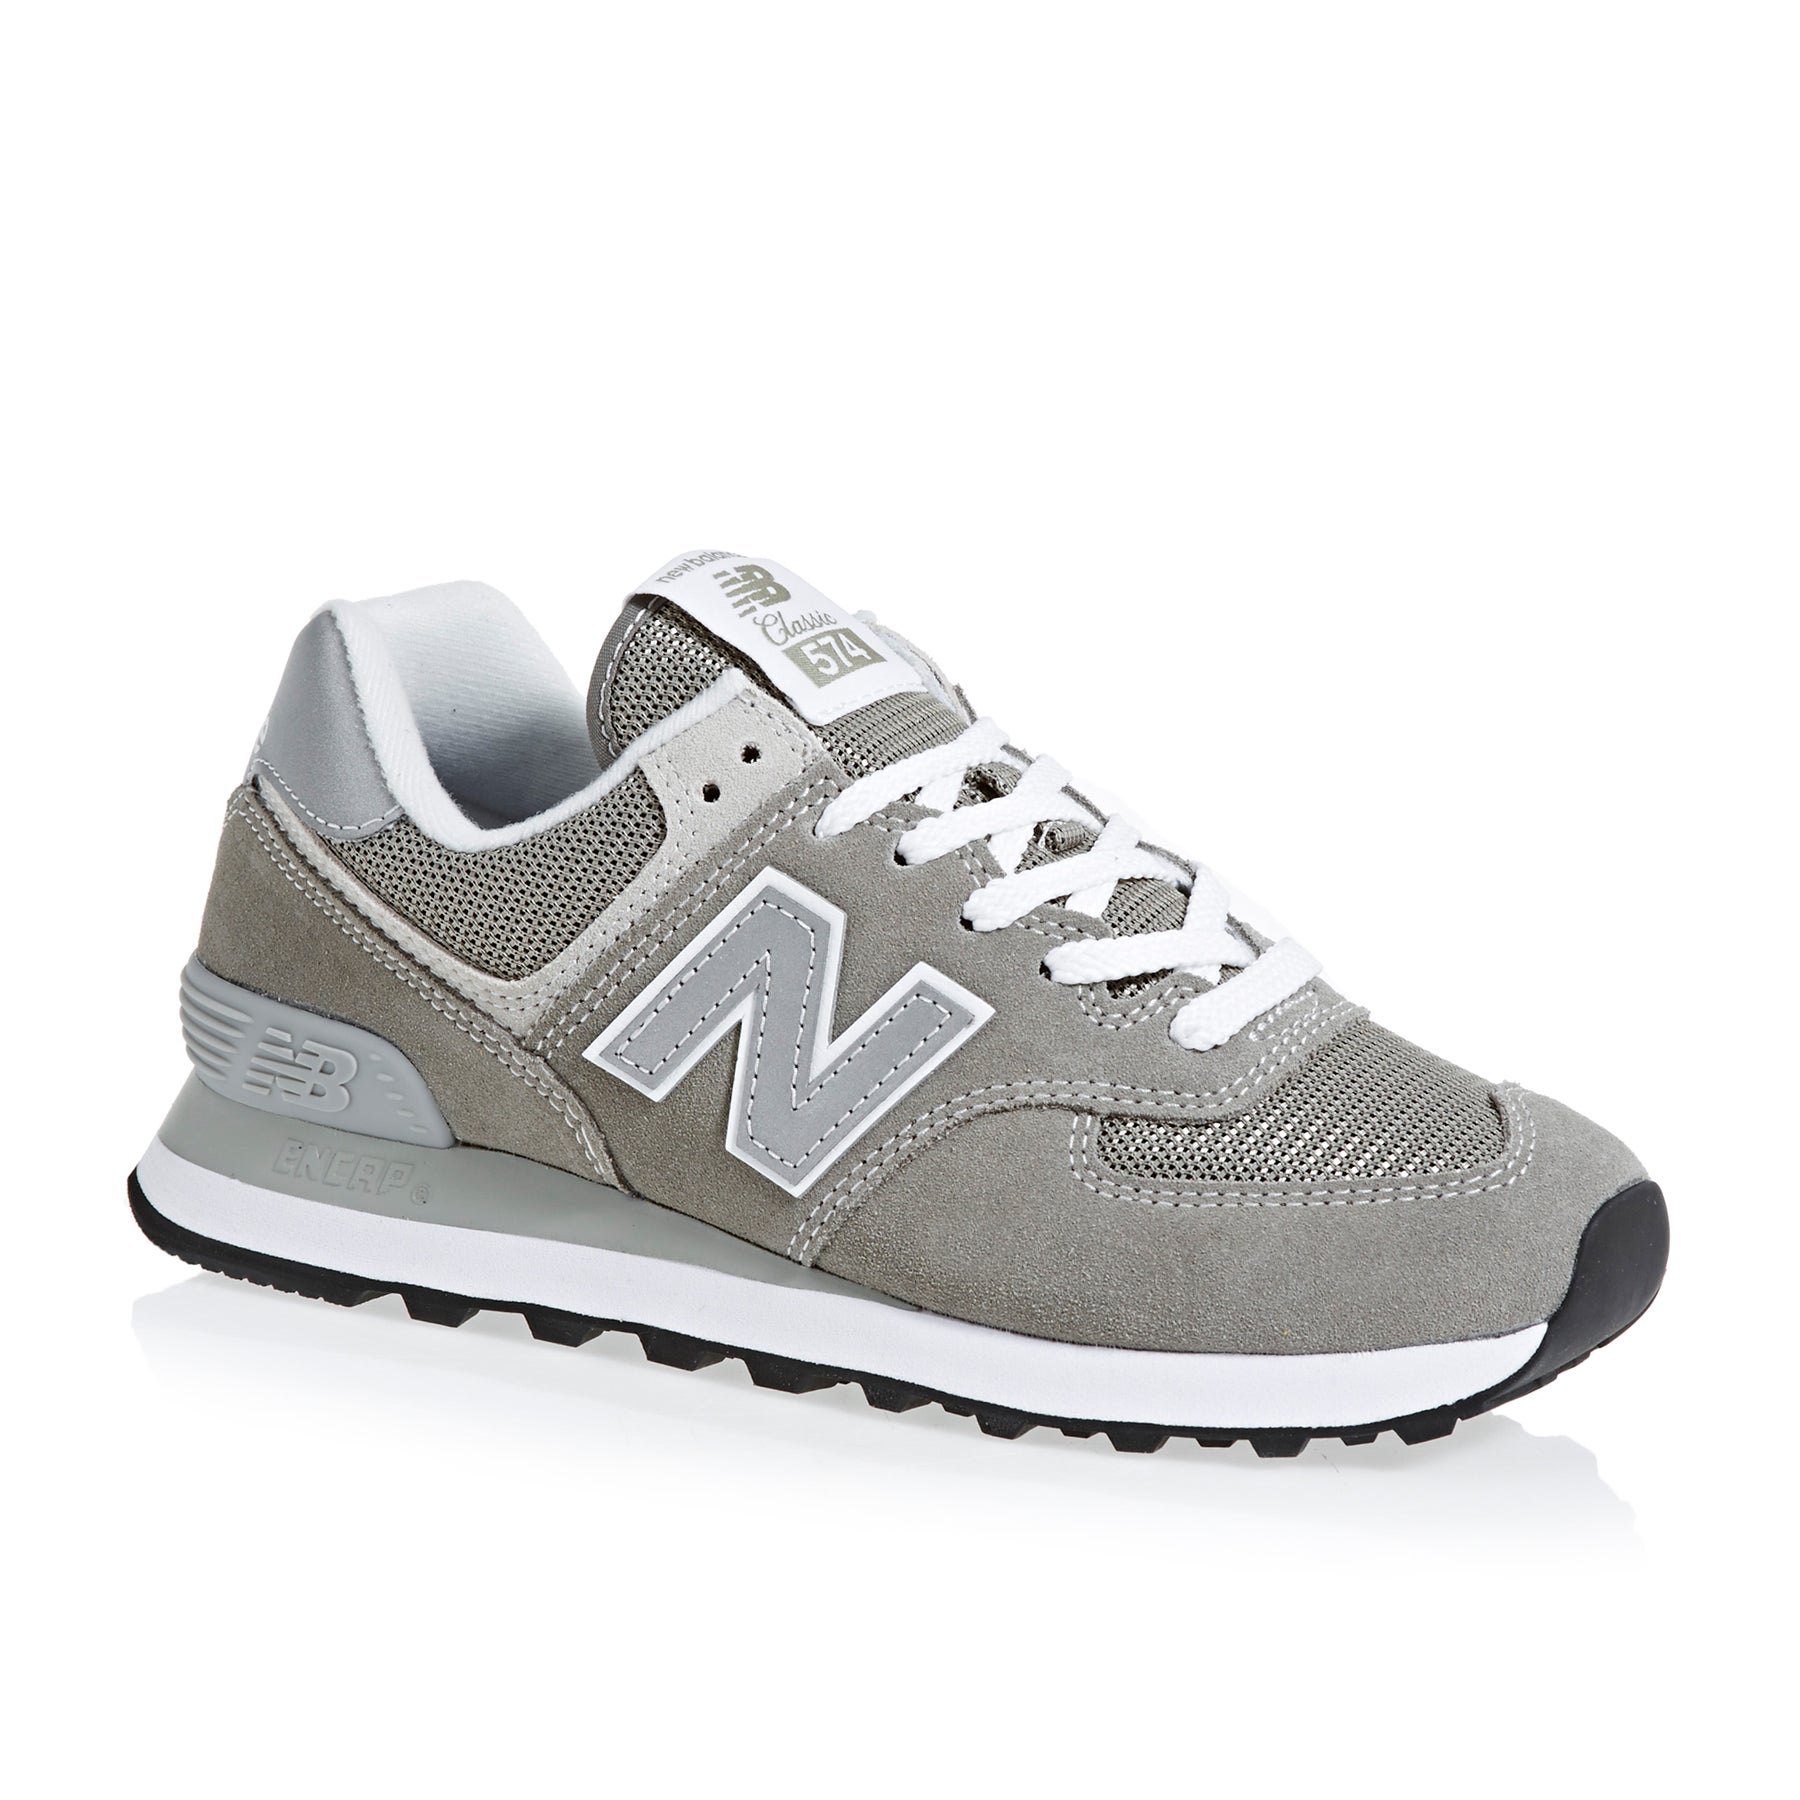 815b0c27baebe3 New Balance Ml574 Shoes available from Surfdome